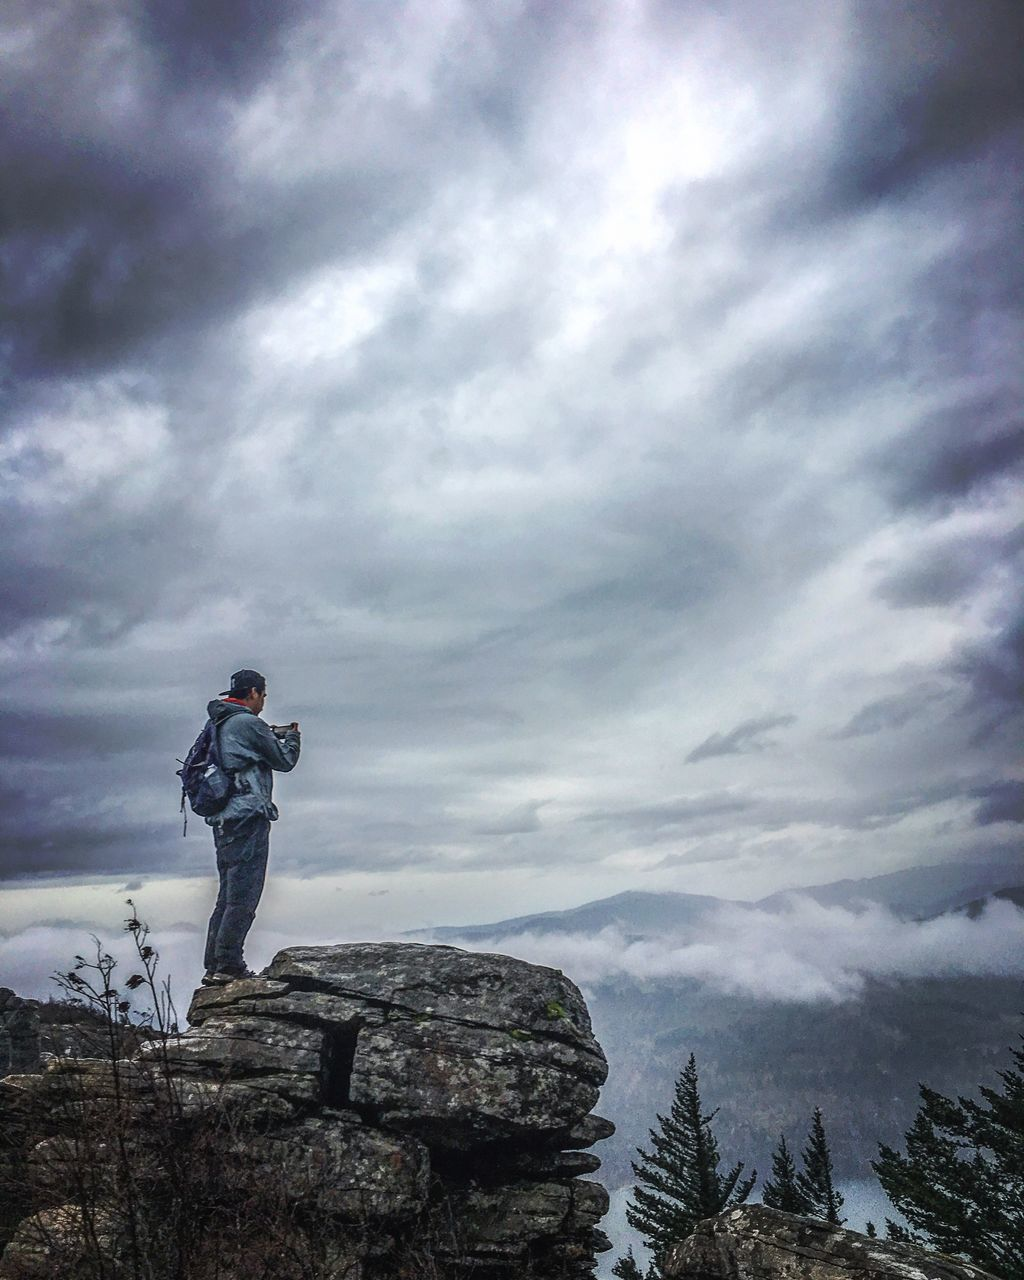 cloud - sky, full length, standing, sky, real people, leisure activity, one person, lifestyles, outdoors, day, nature, men, low angle view, scenics, beauty in nature, mountain, young adult, people